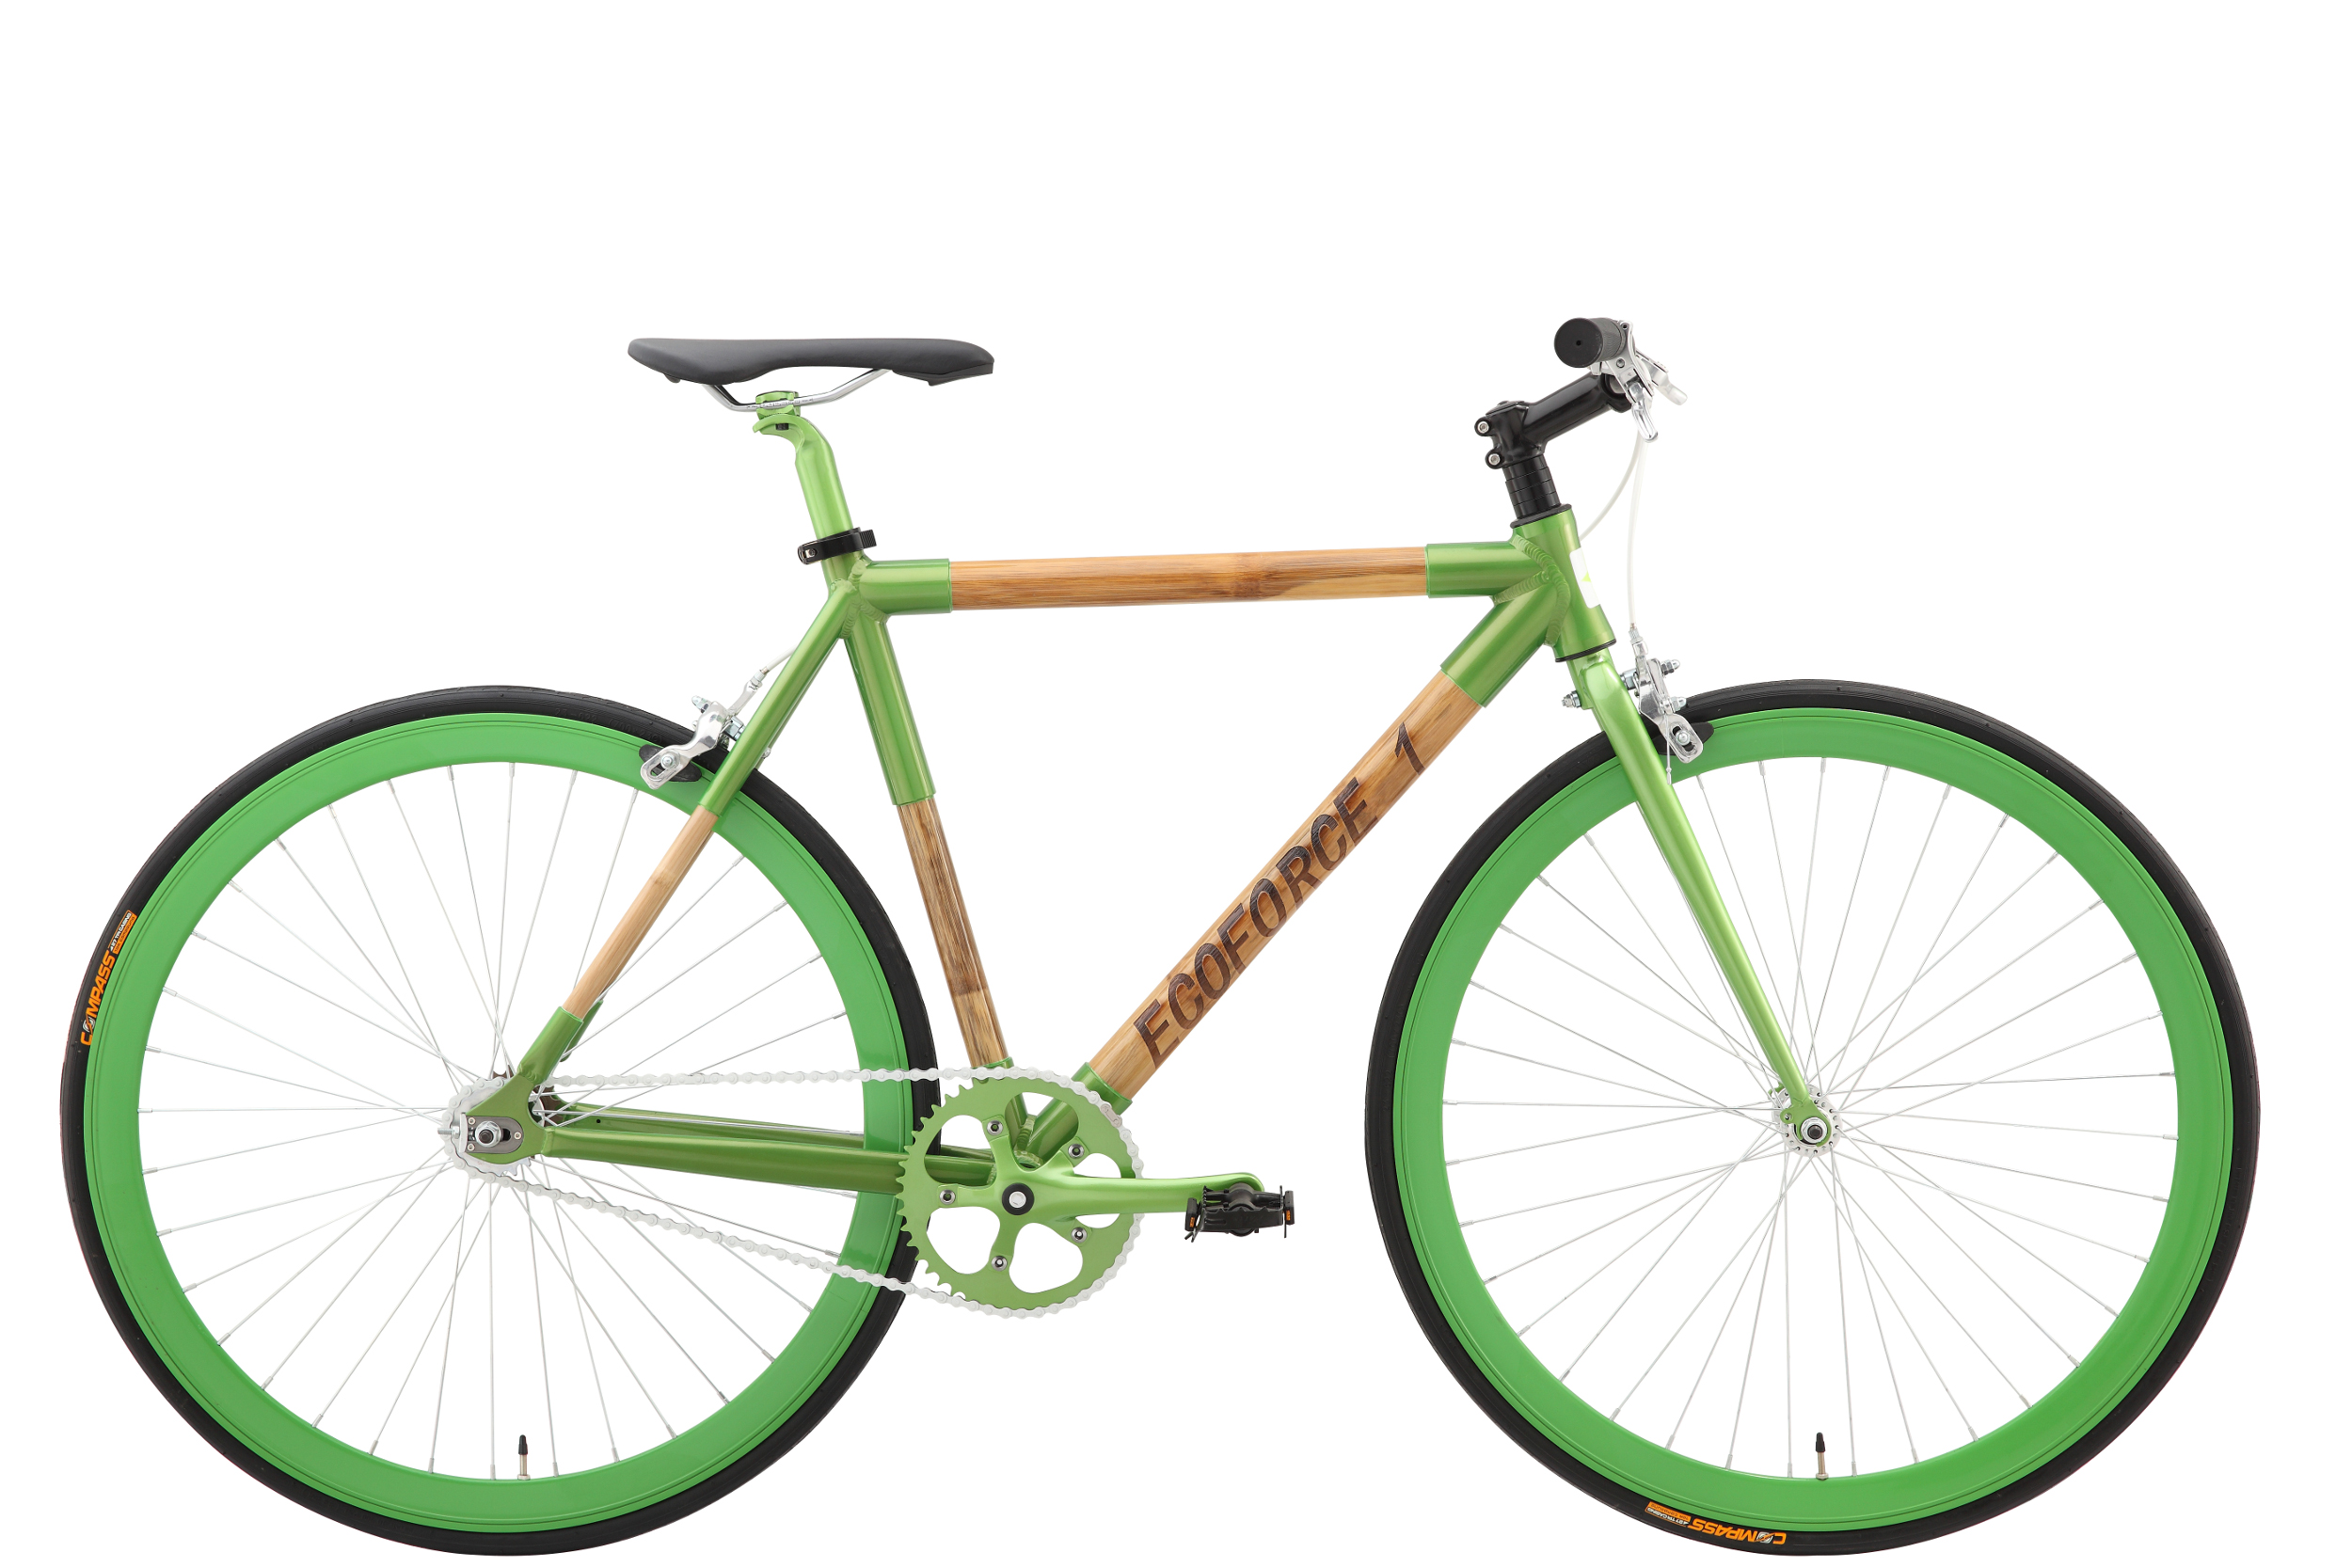 Affordable Bamboo Bikes From Greenstar Bikes | Urban Velo